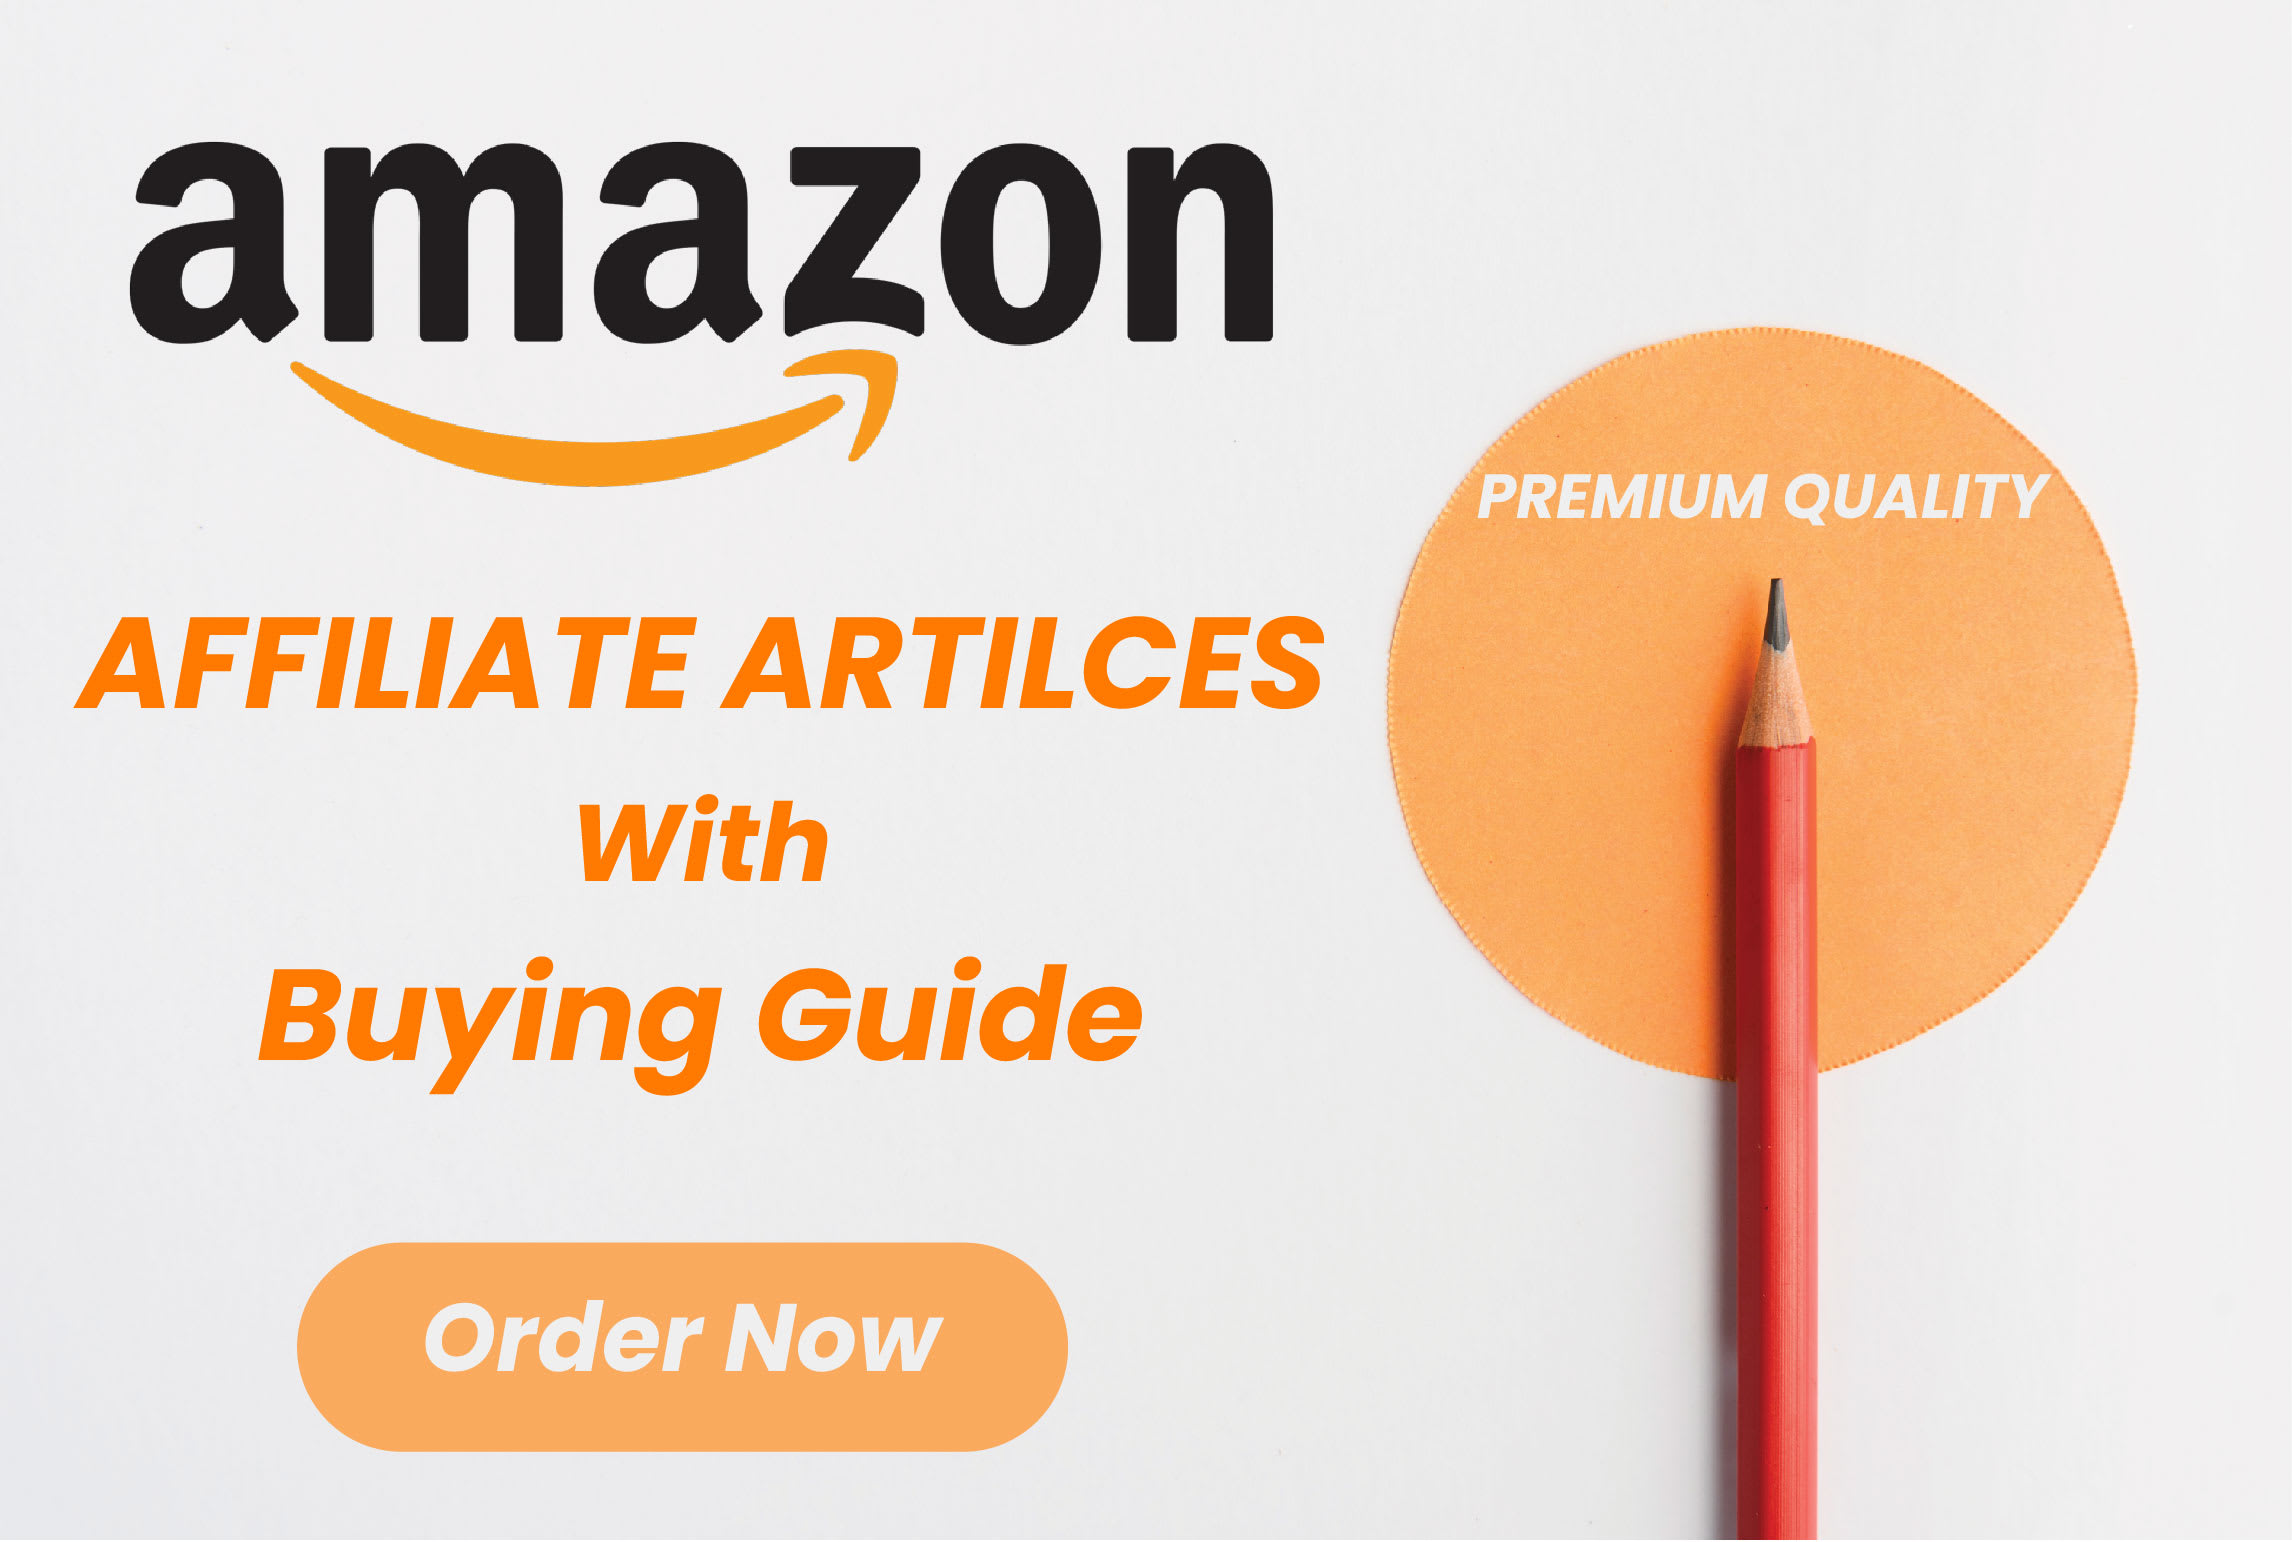 write an outstanding amazon affiliate article and buying guide